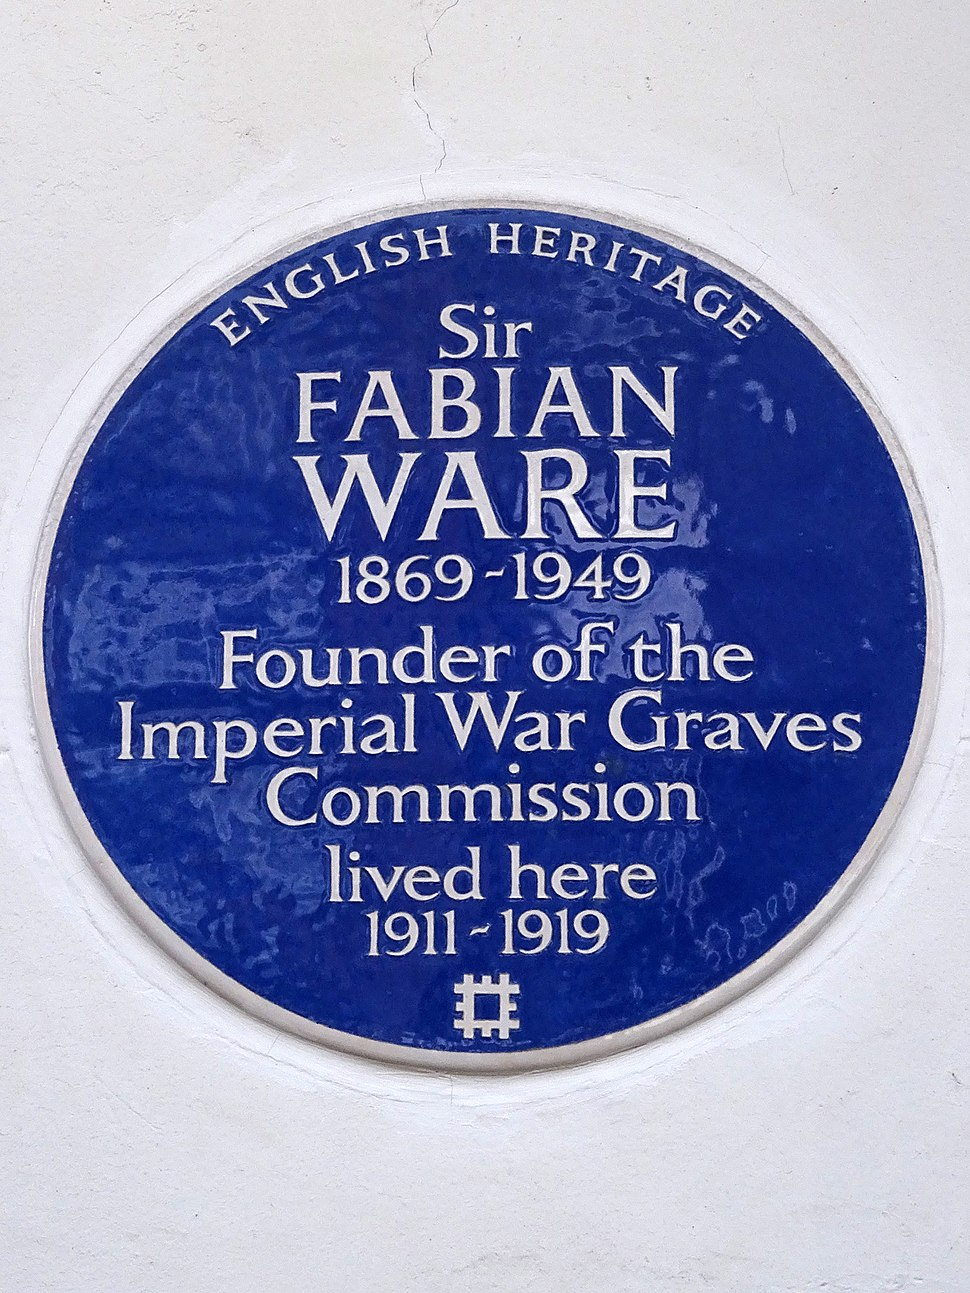 Sir Fabian Ware 1869-1949 Founder of the Imperial War Graves Commission lived here 1911-1919